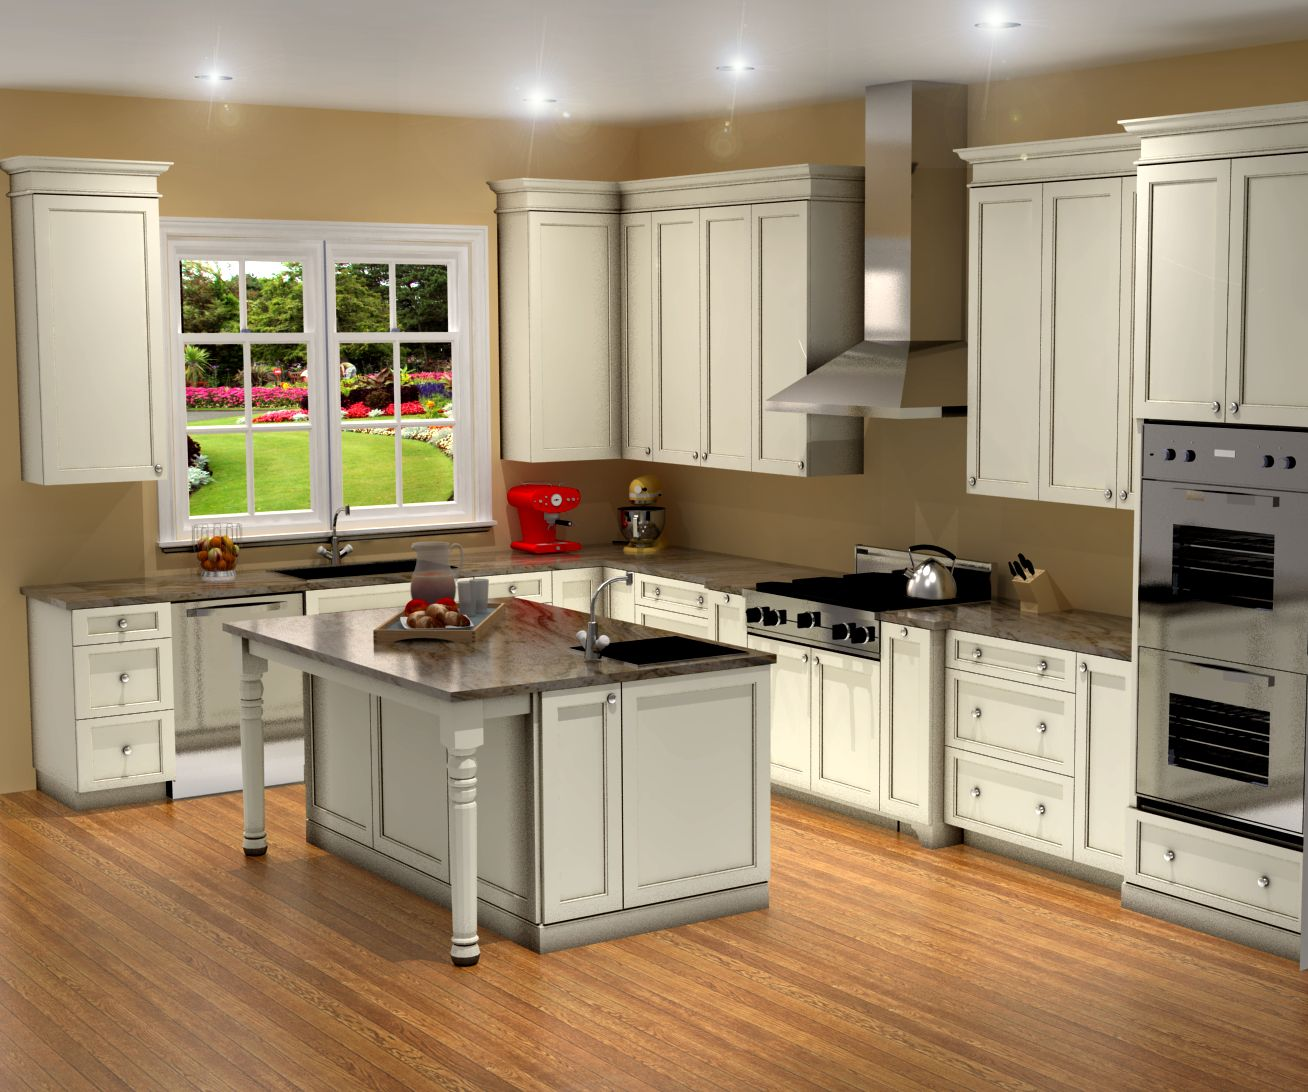 Traditional white kitchen design 3d rendering nick for How to create a kitchen